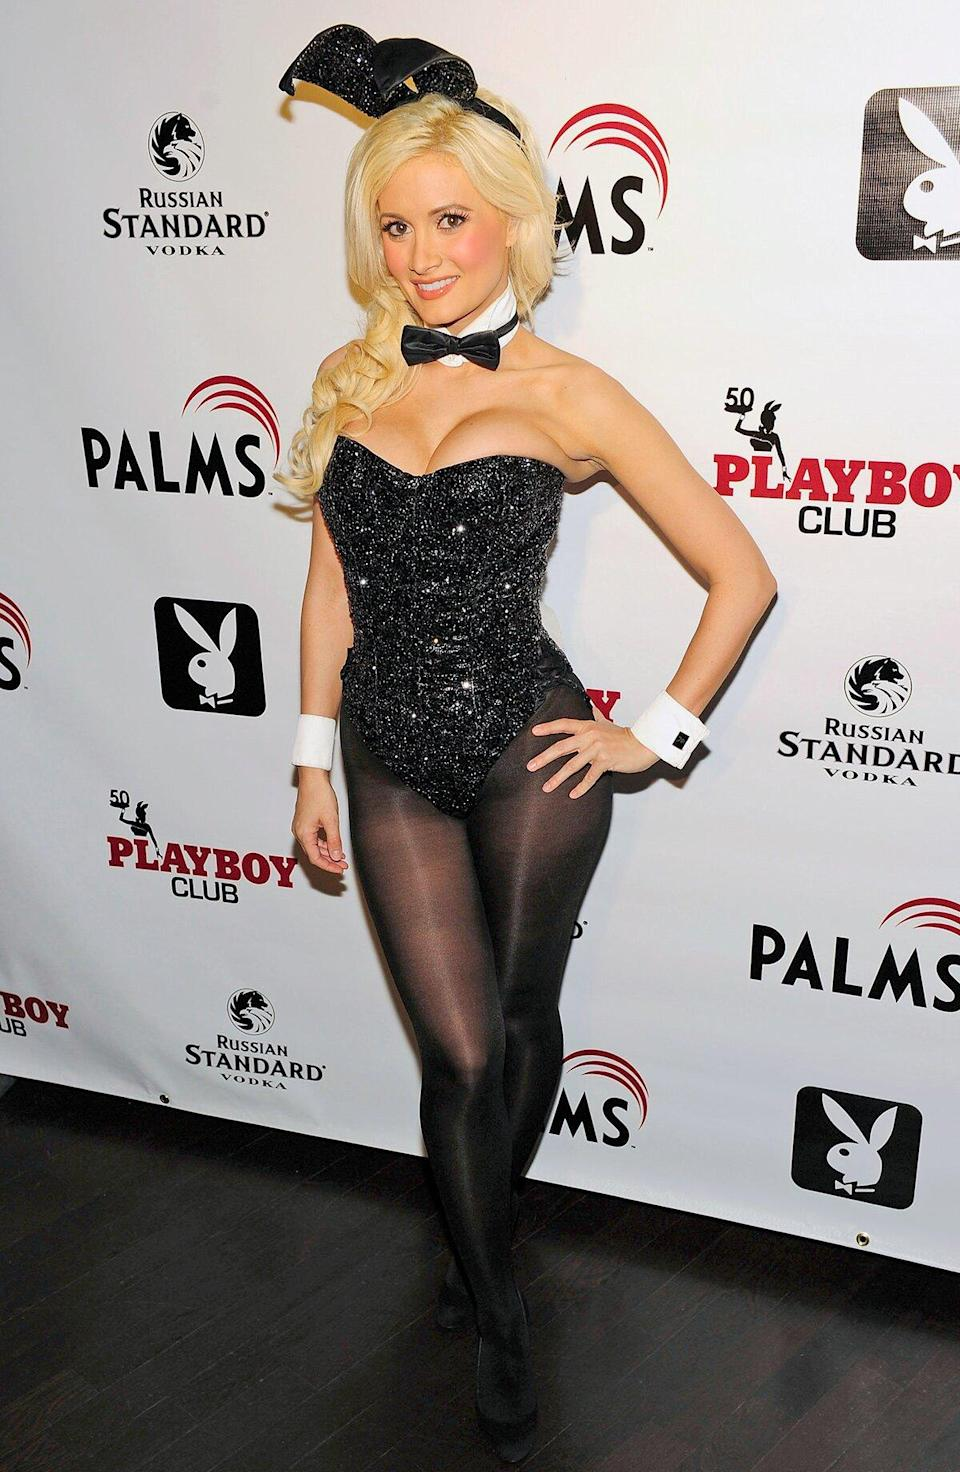 Television personality Holly Madison arrives for the Playboy Club's 50th Anniversary at The Playboy Club in The Palms Casino Resort on June 10, 2010